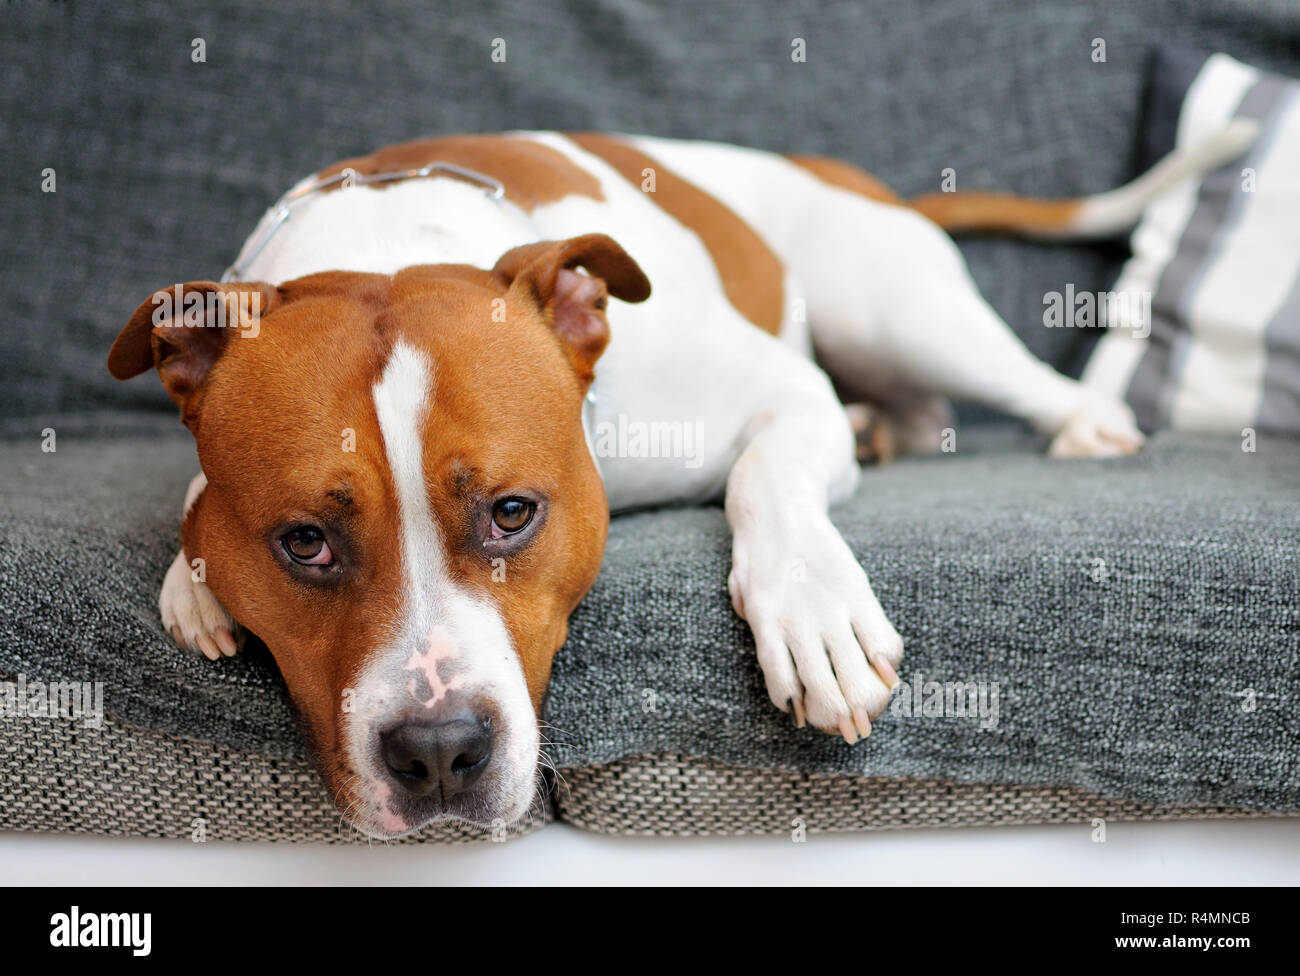 Lying dog - Stock Image